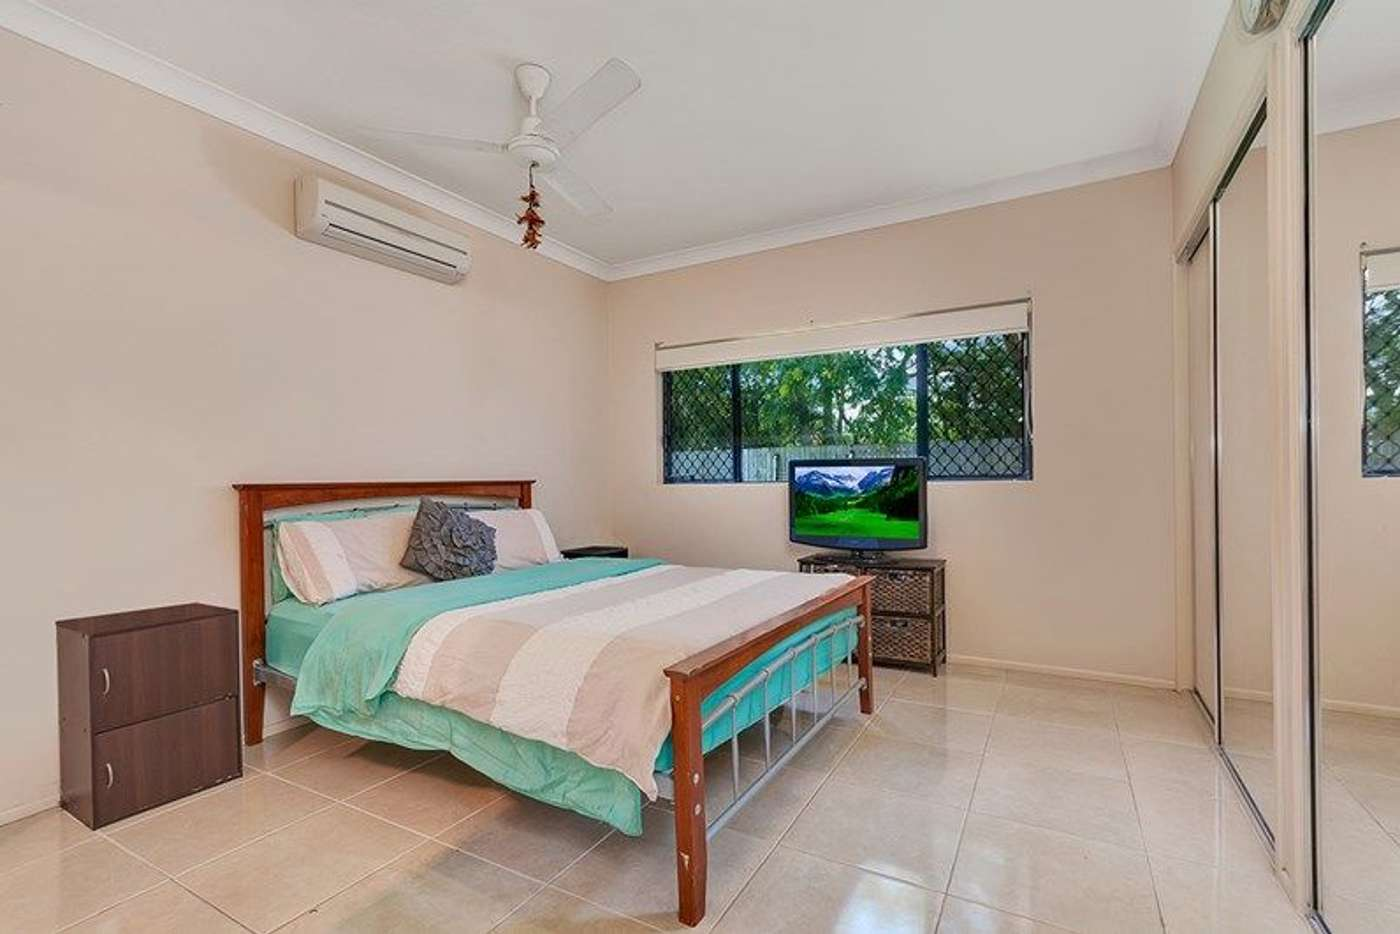 Sixth view of Homely house listing, 16 Milko Close, Brinsmead QLD 4870